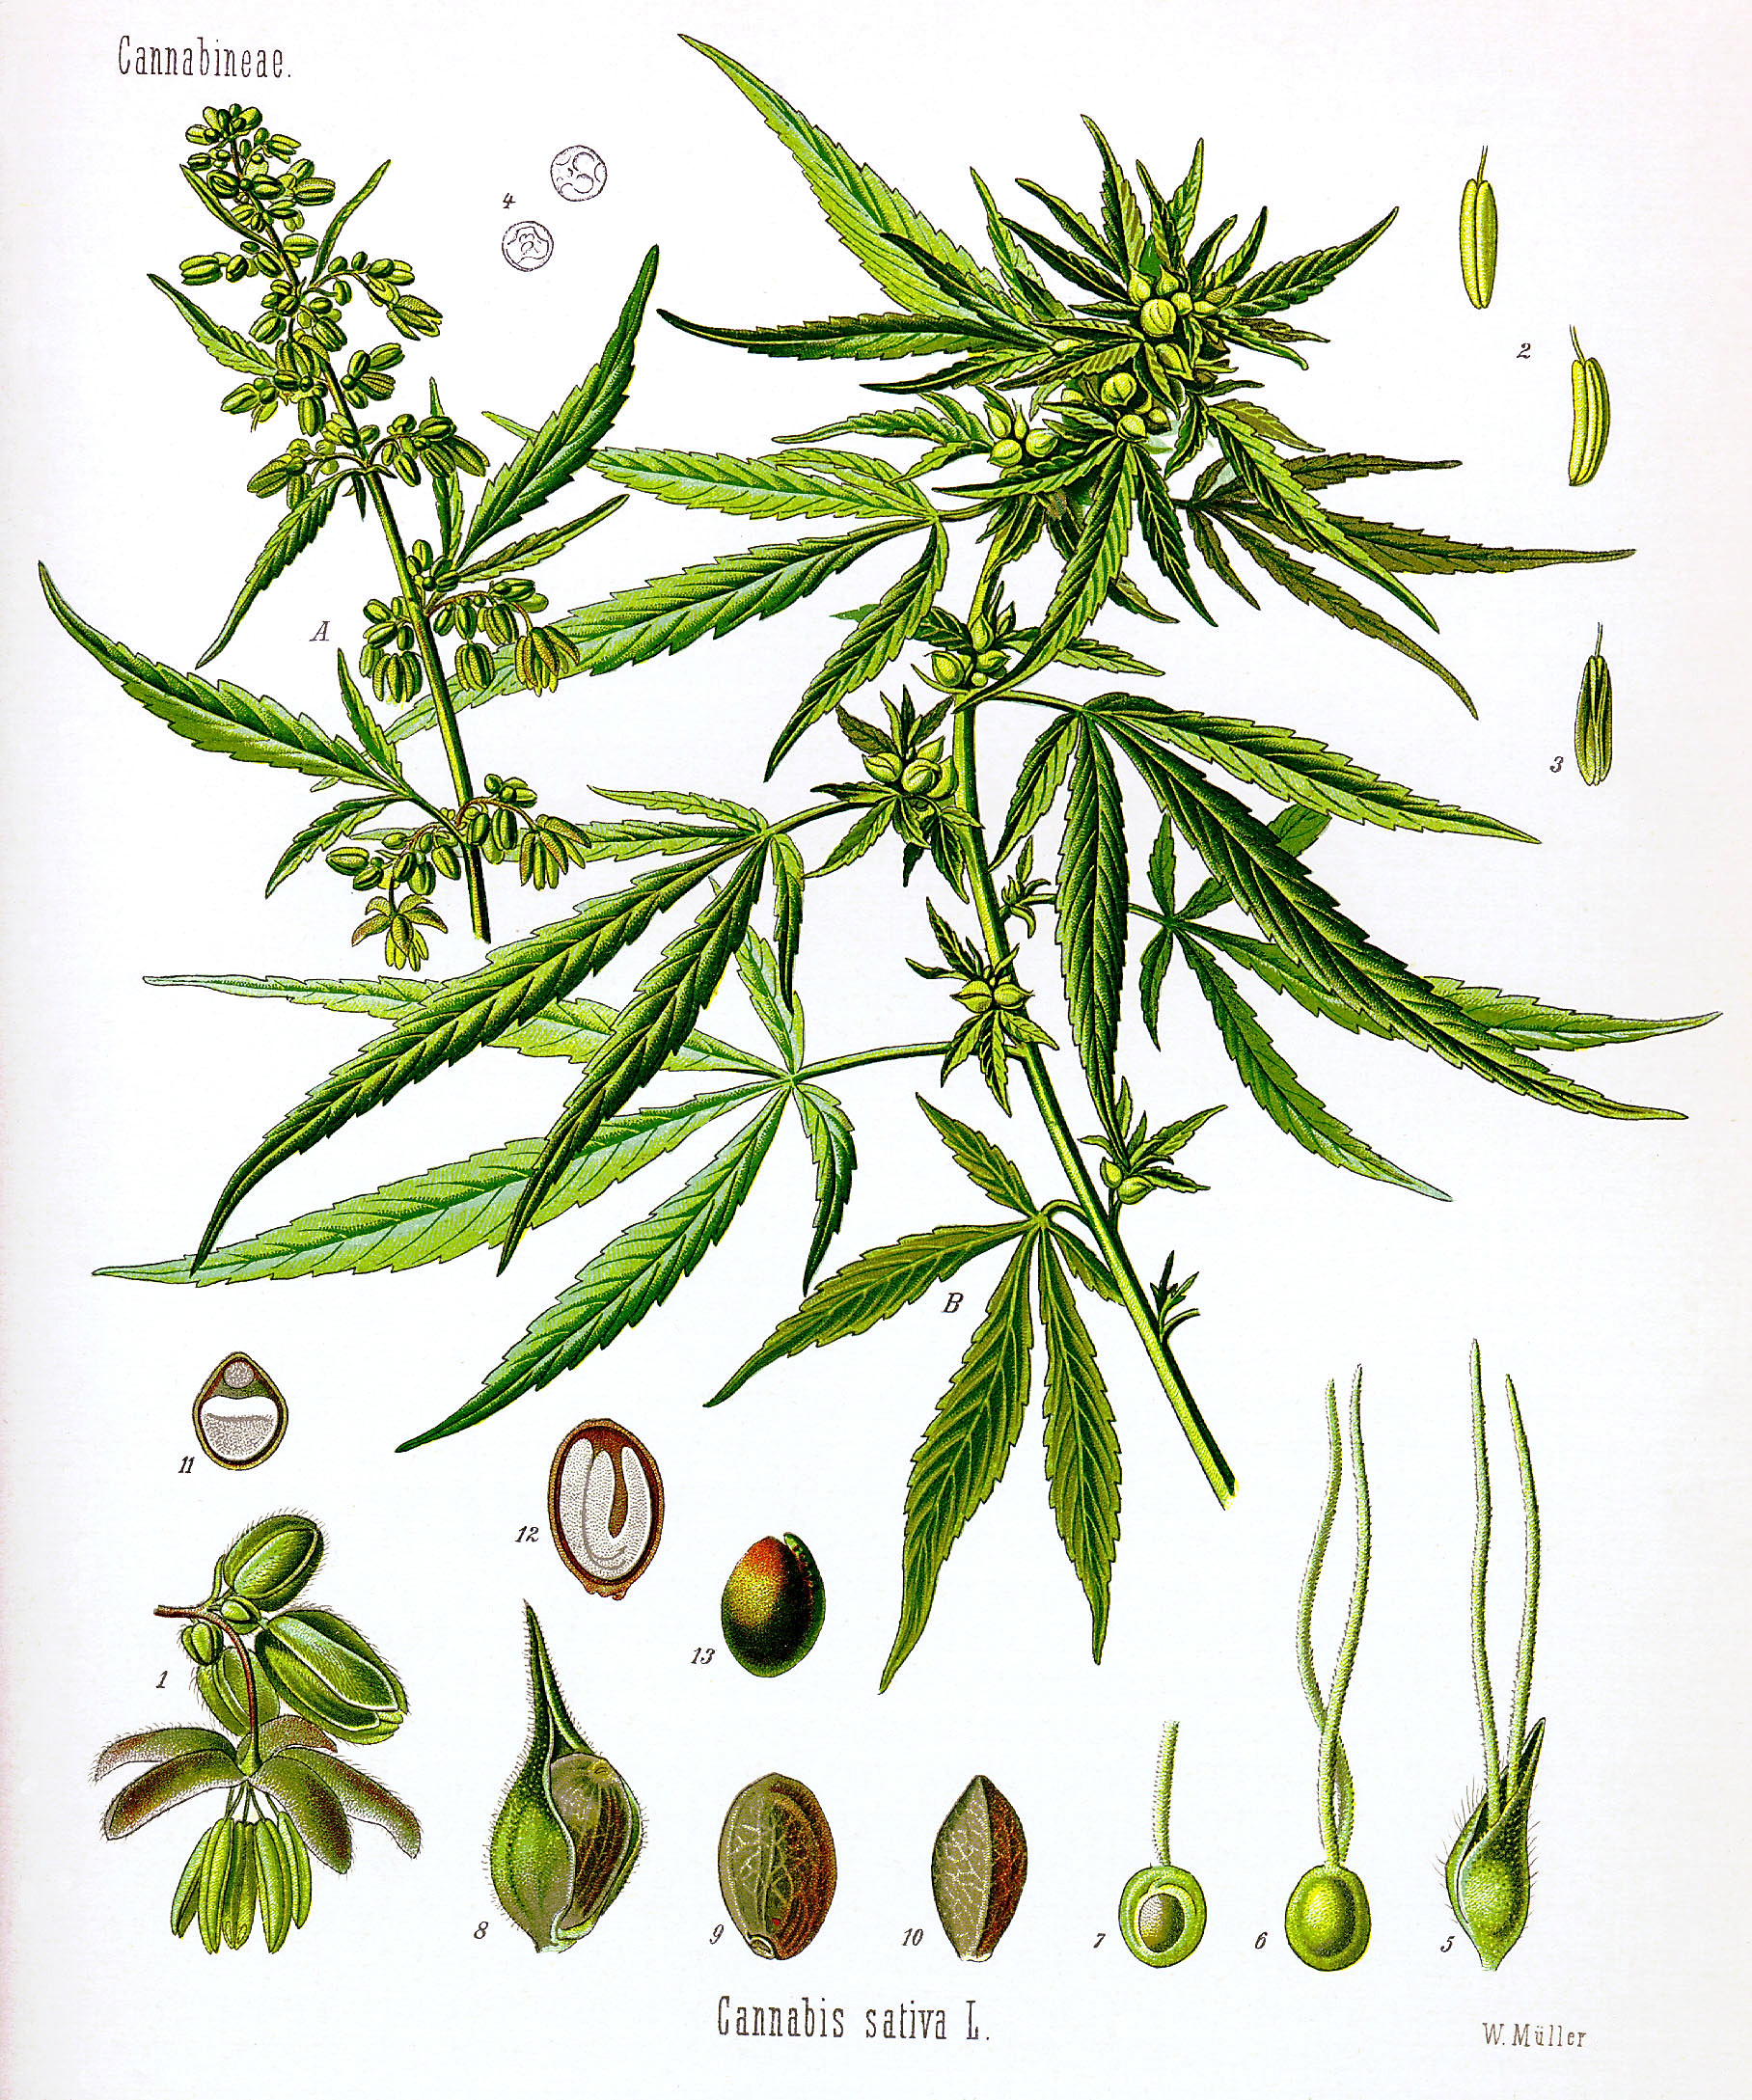 1816x2177 Filecannabis Sativa Koehler Drawing.jpg